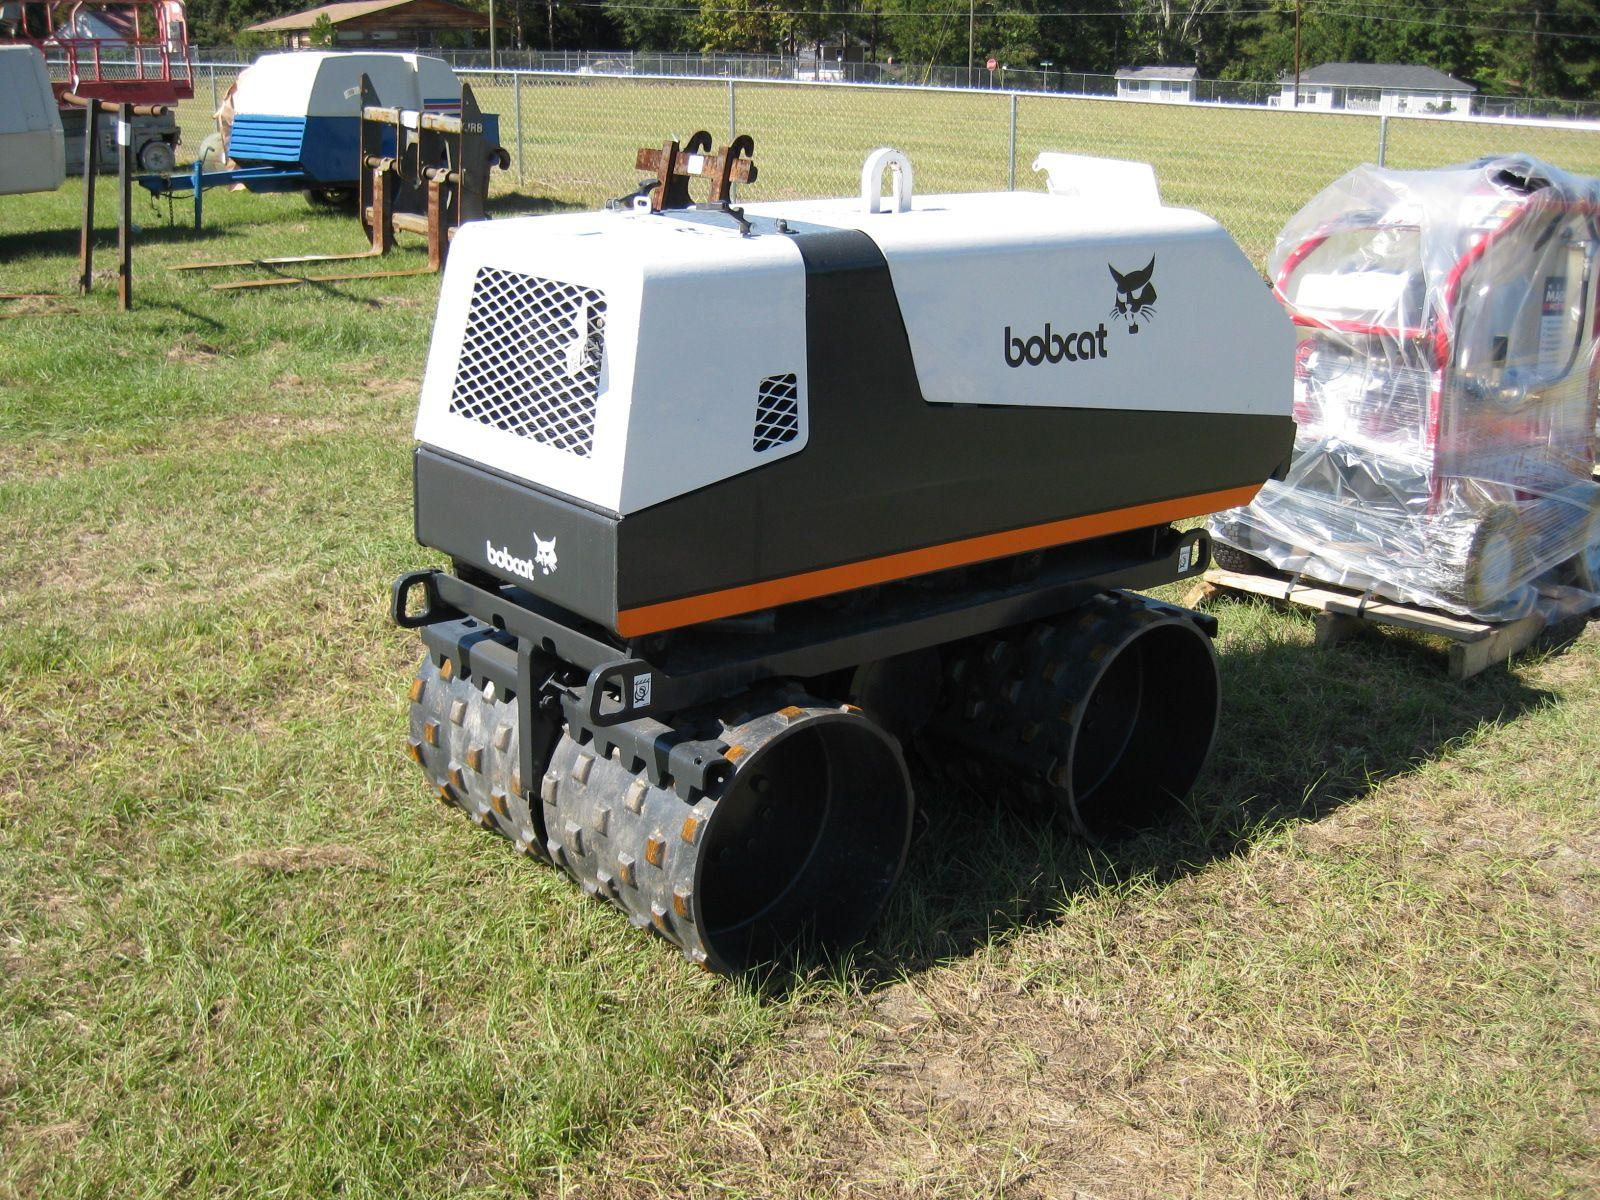 small resolution of bobcat ingersoll rand bct 13 trench compactor s n 18558image 1 bobcat ingersoll rand bct 13 trench